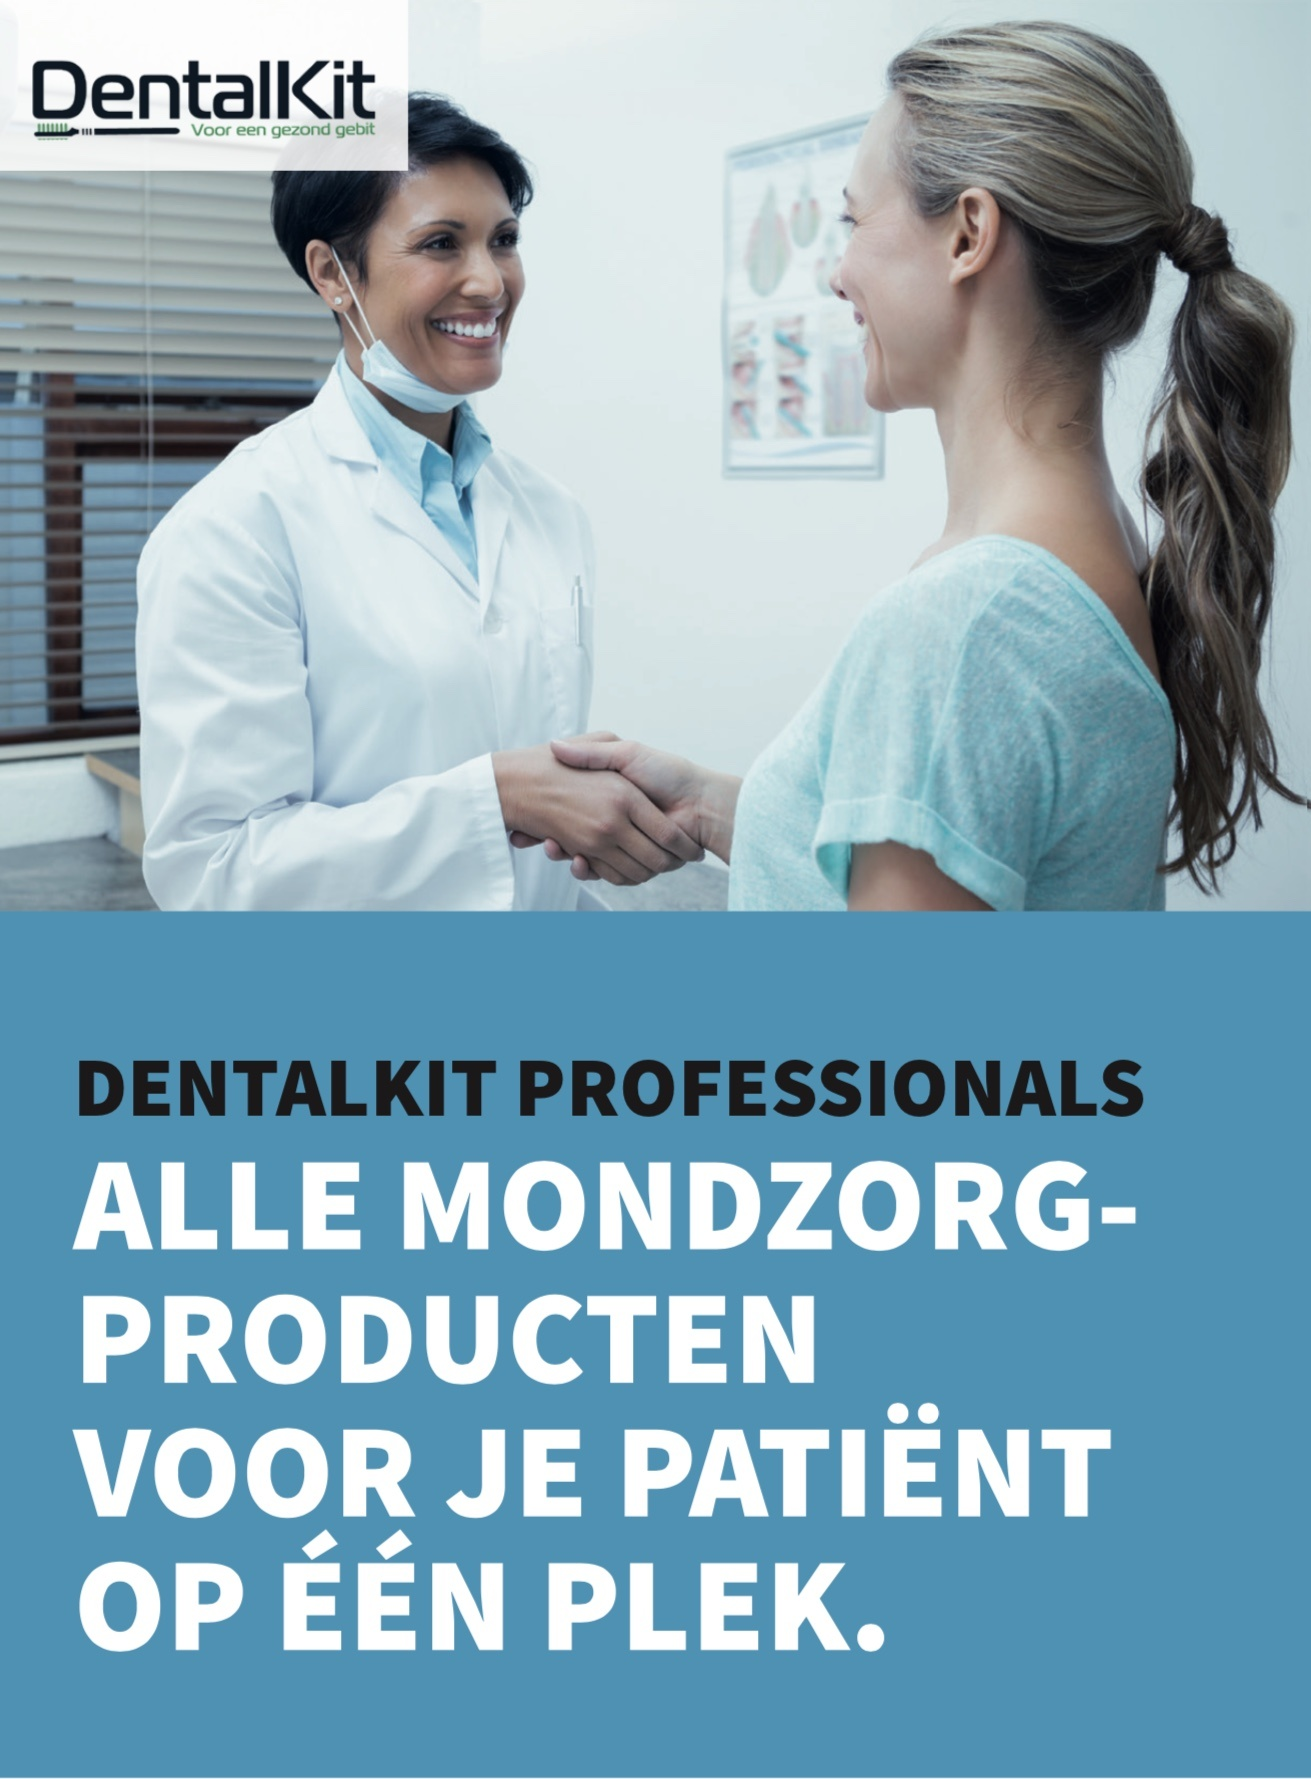 dentalkit-professionals